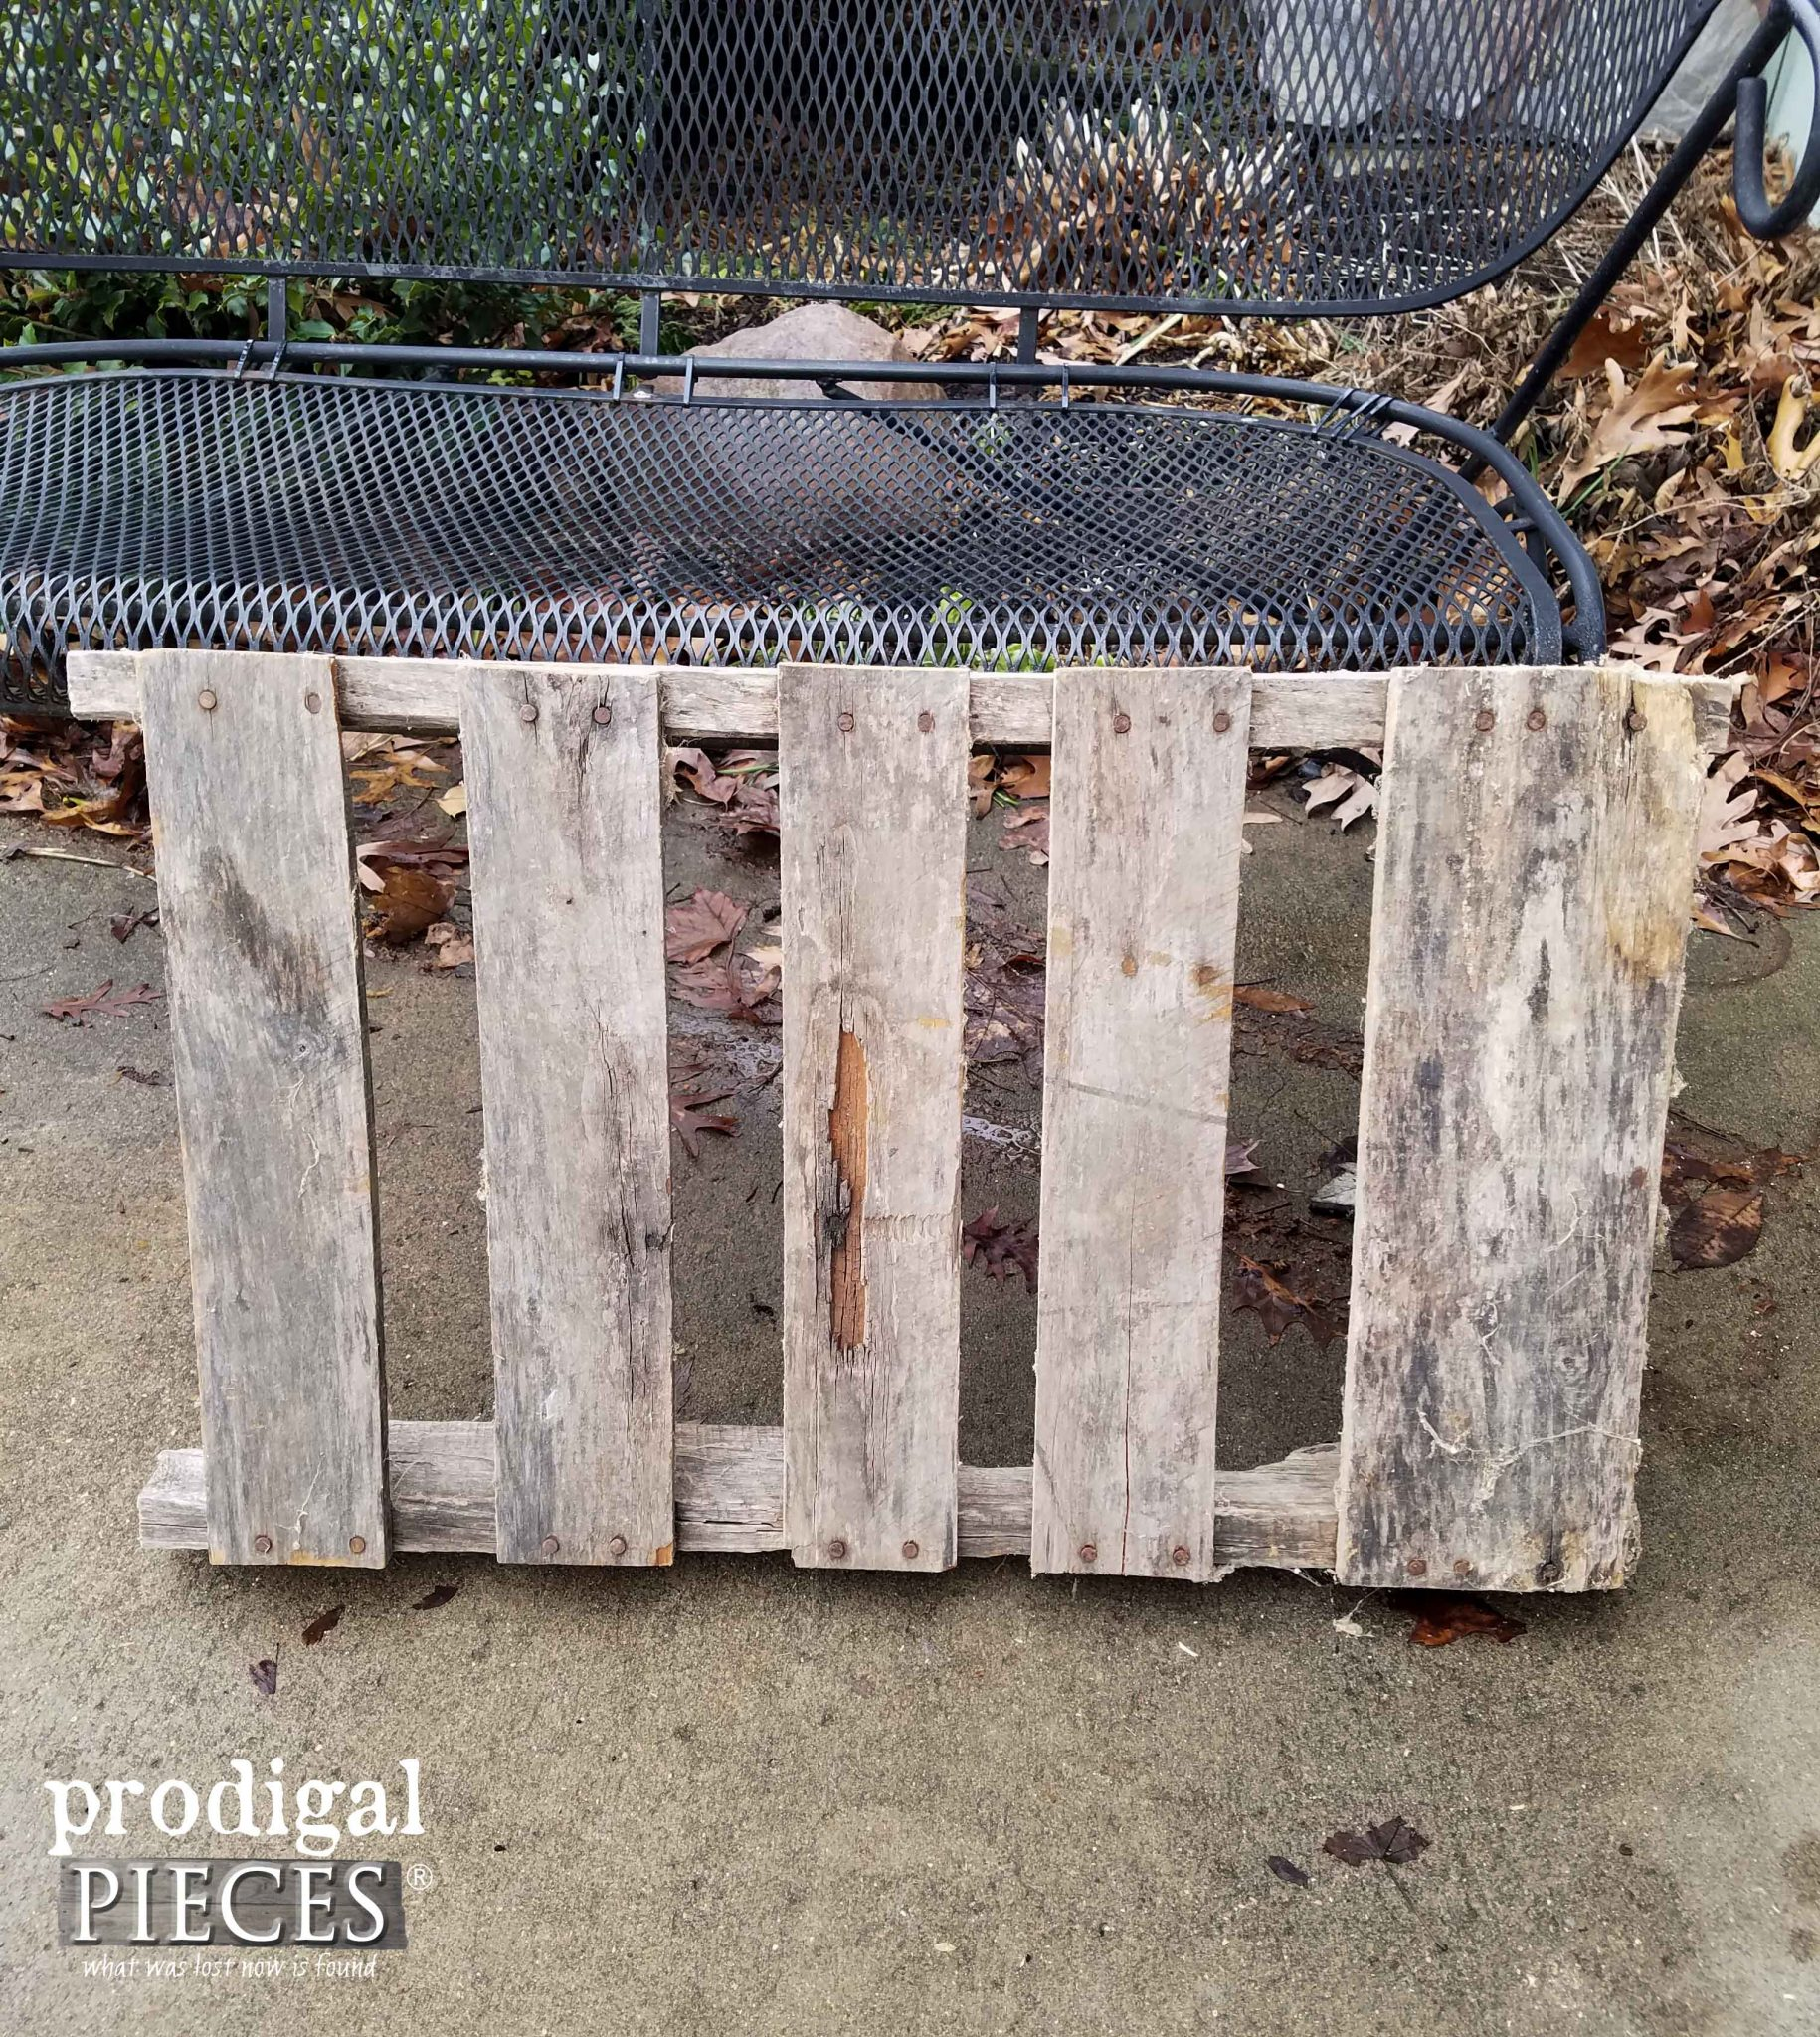 Piece of Pallet Before Repurposing | Prodigal Pieces | prodigalpieces.com